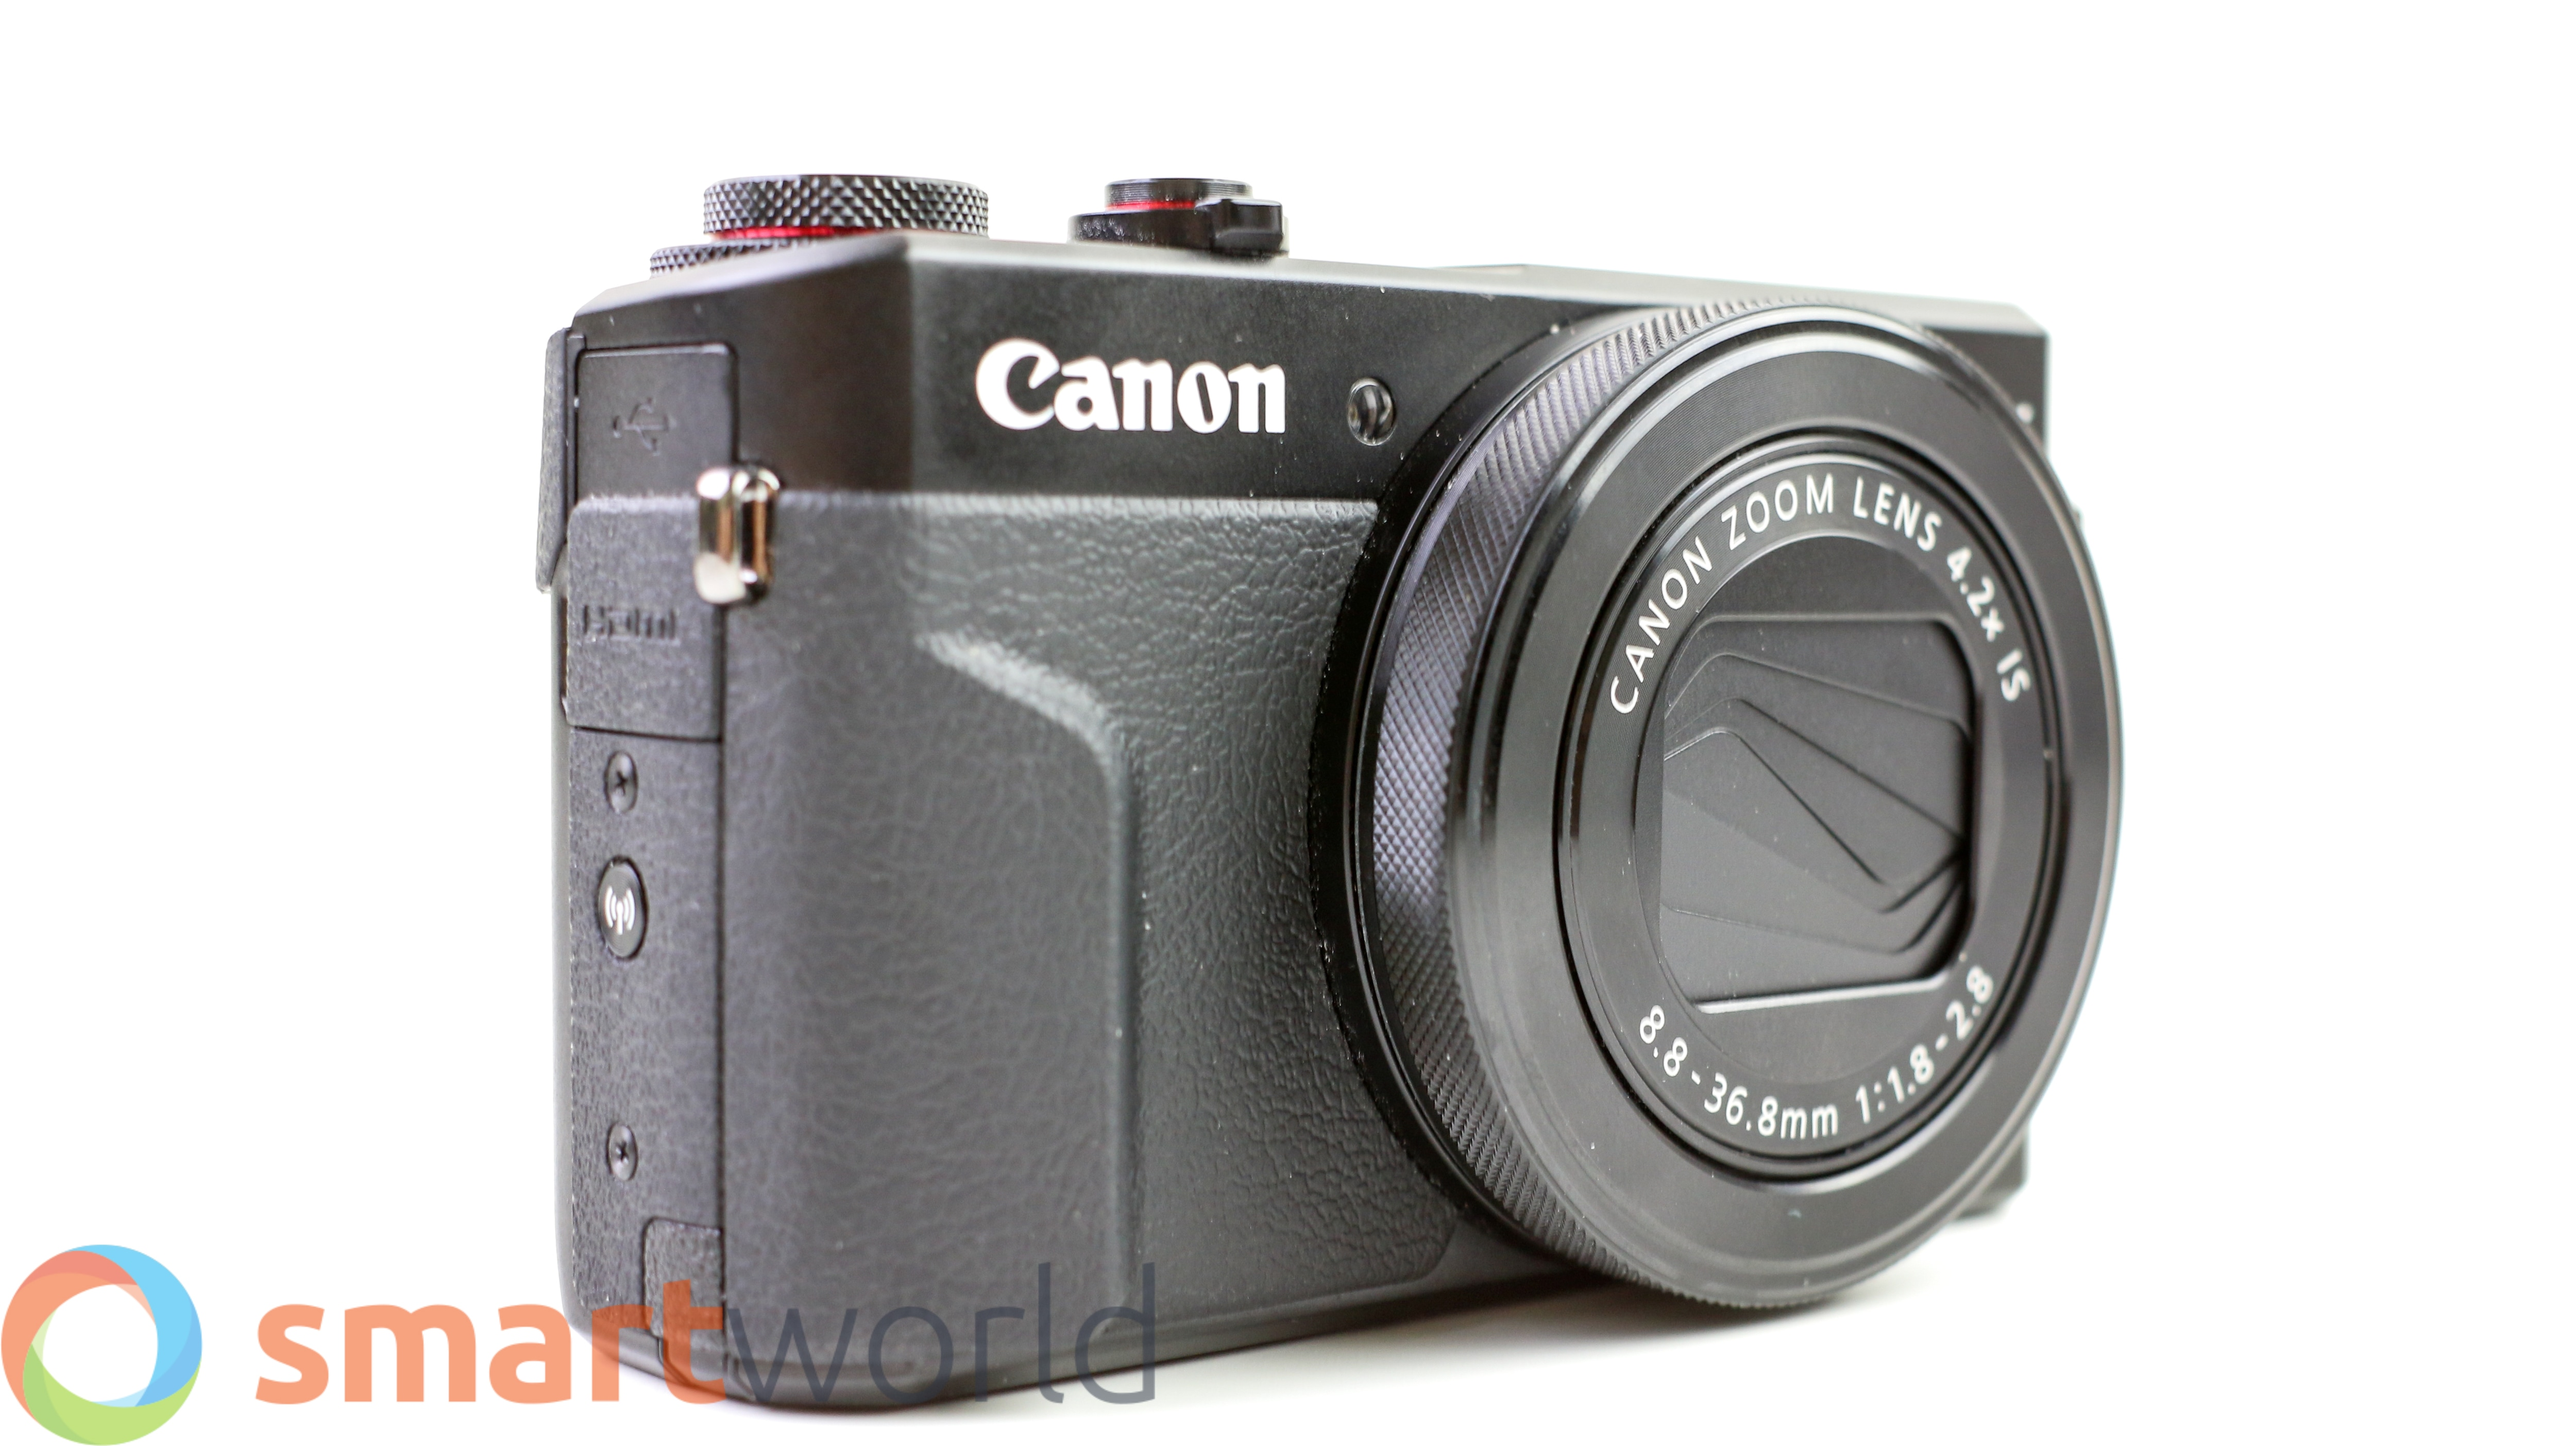 Recensione canon powershot g7 x mark ii foto video for Recensioni h2o power x